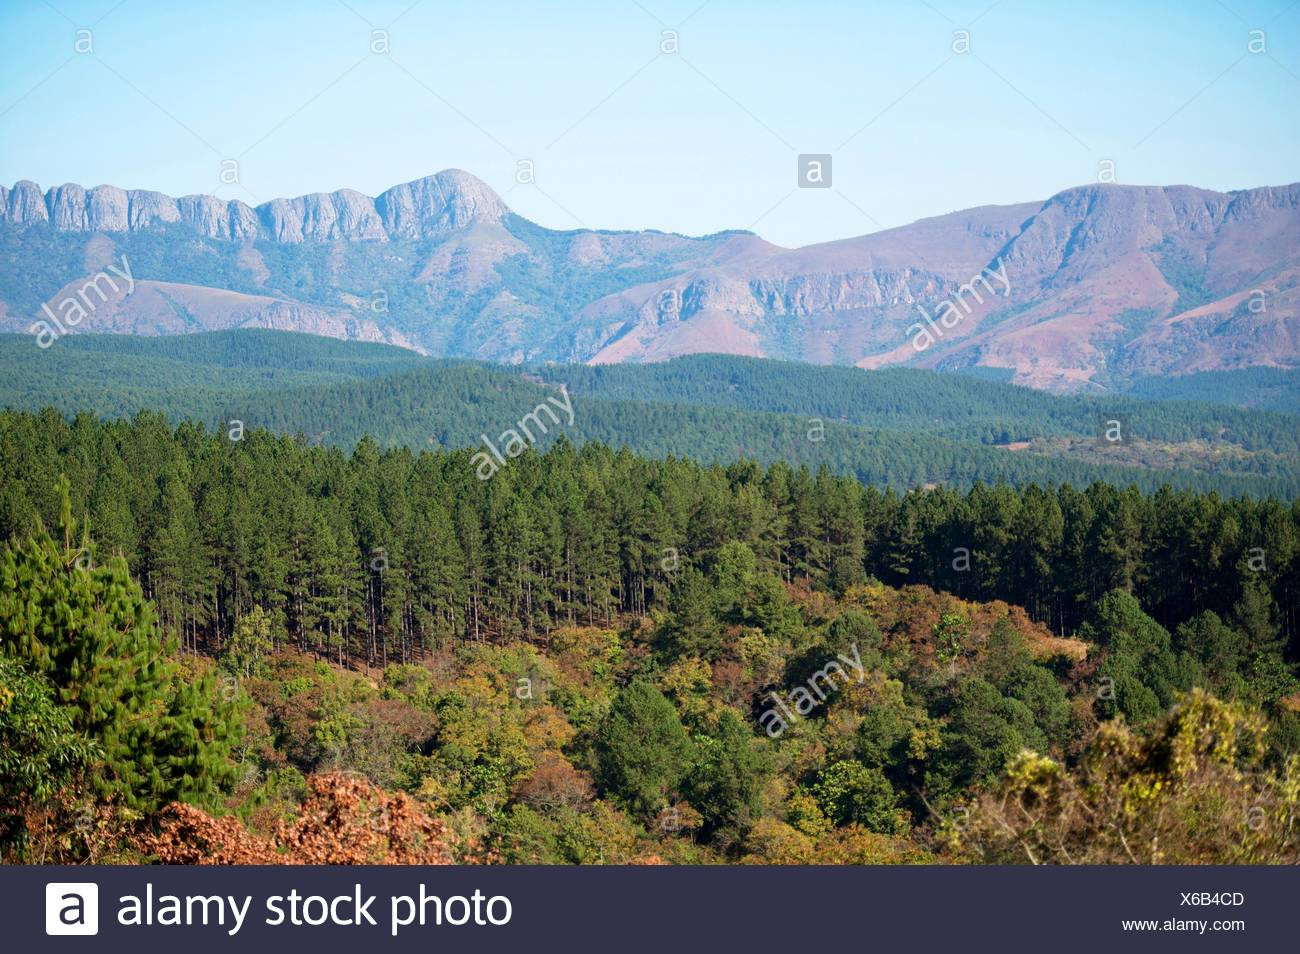 Scenic view witht forest and hills in background, Agatha, Tzaneen district, Limpopo province, South Africa. - Stock Image